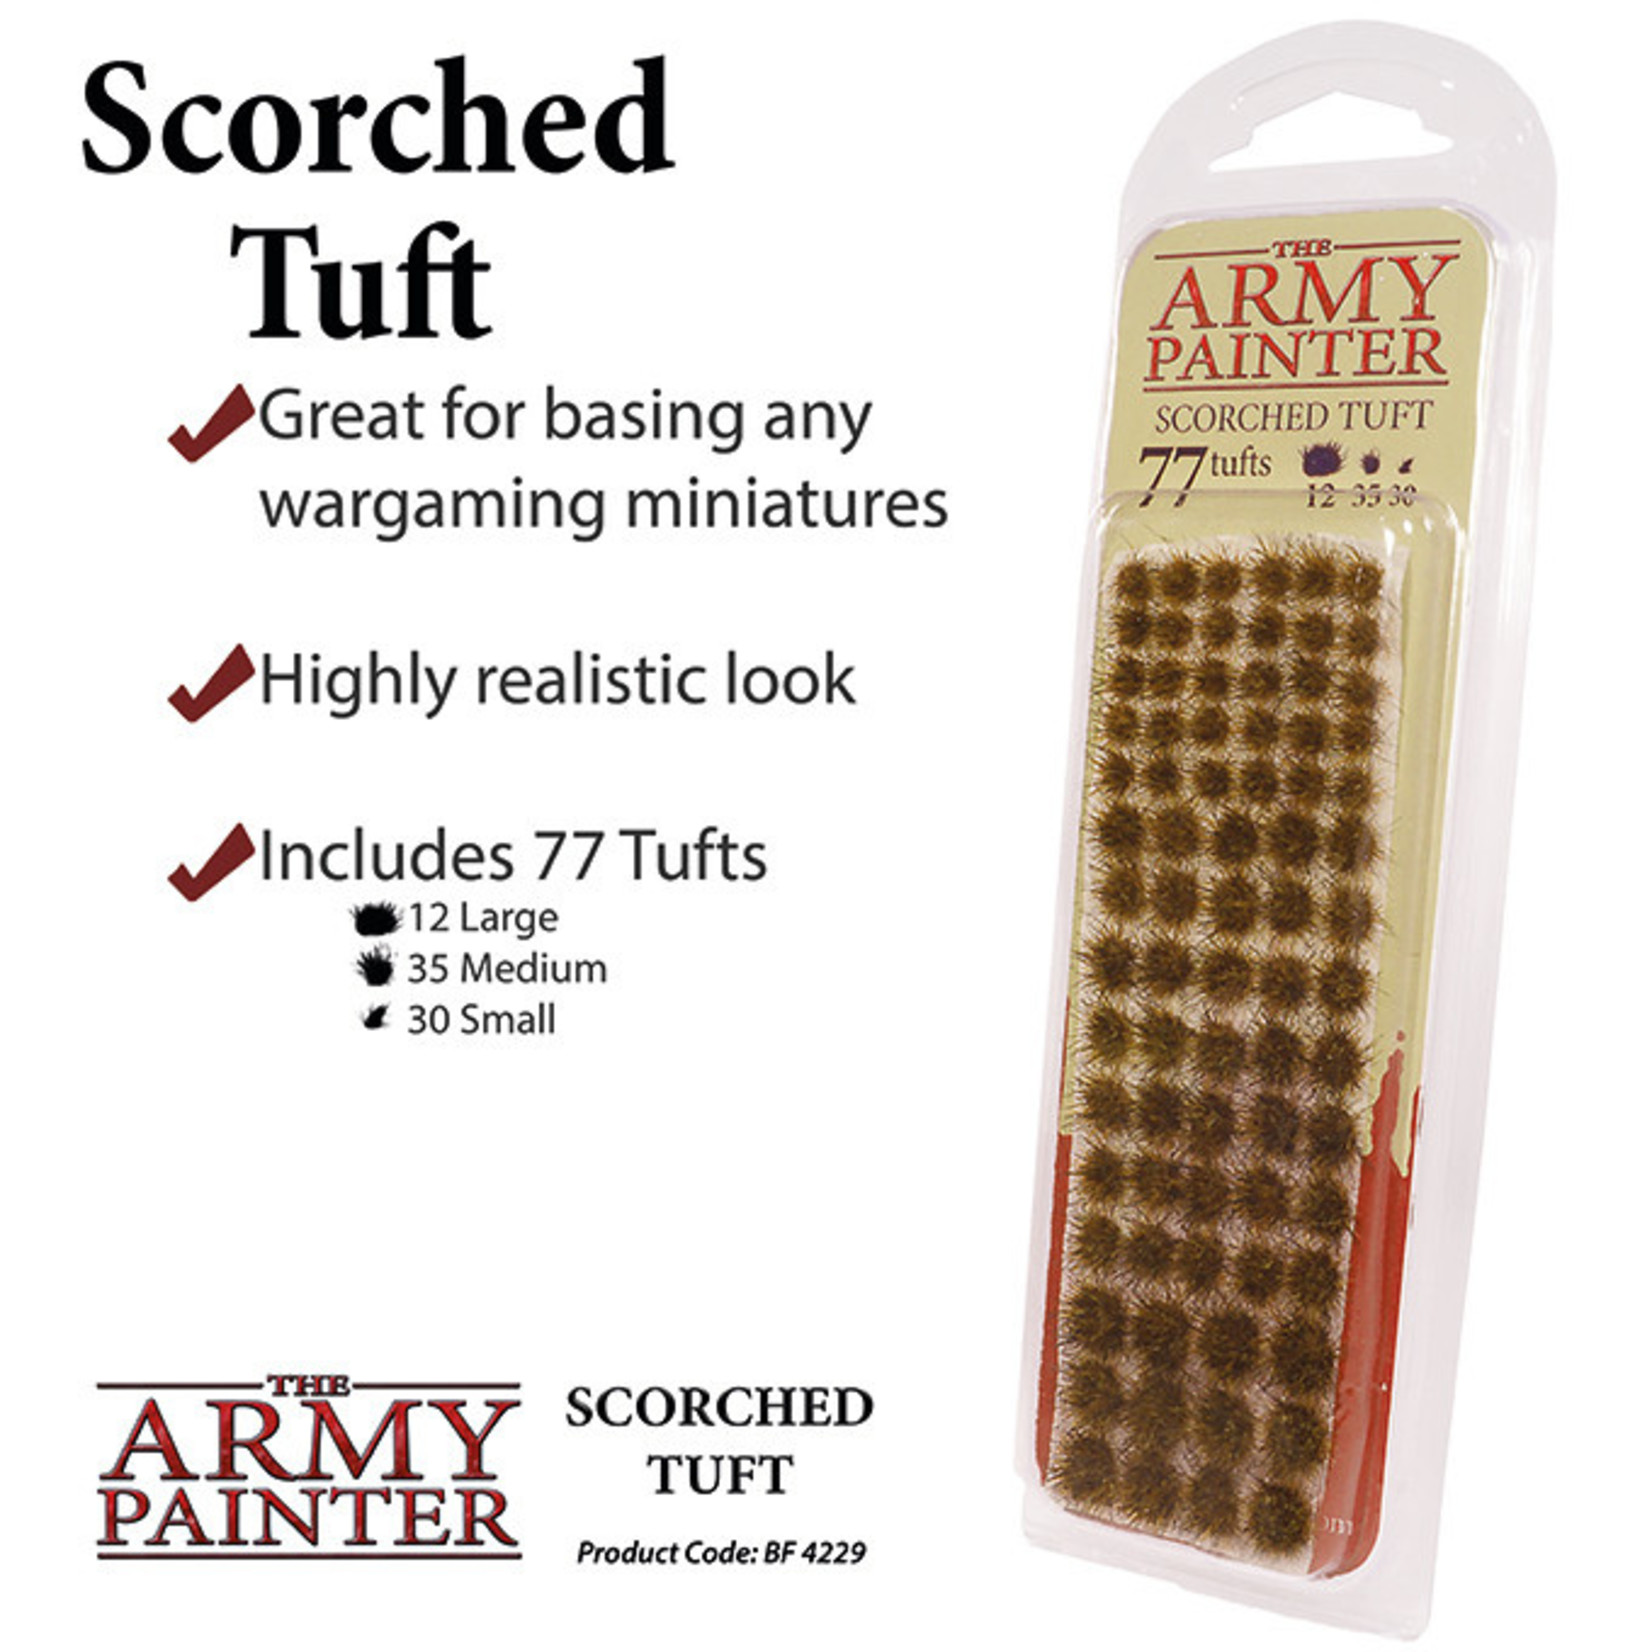 The Army Painter Battlefields: Scorched Tuft (2019)